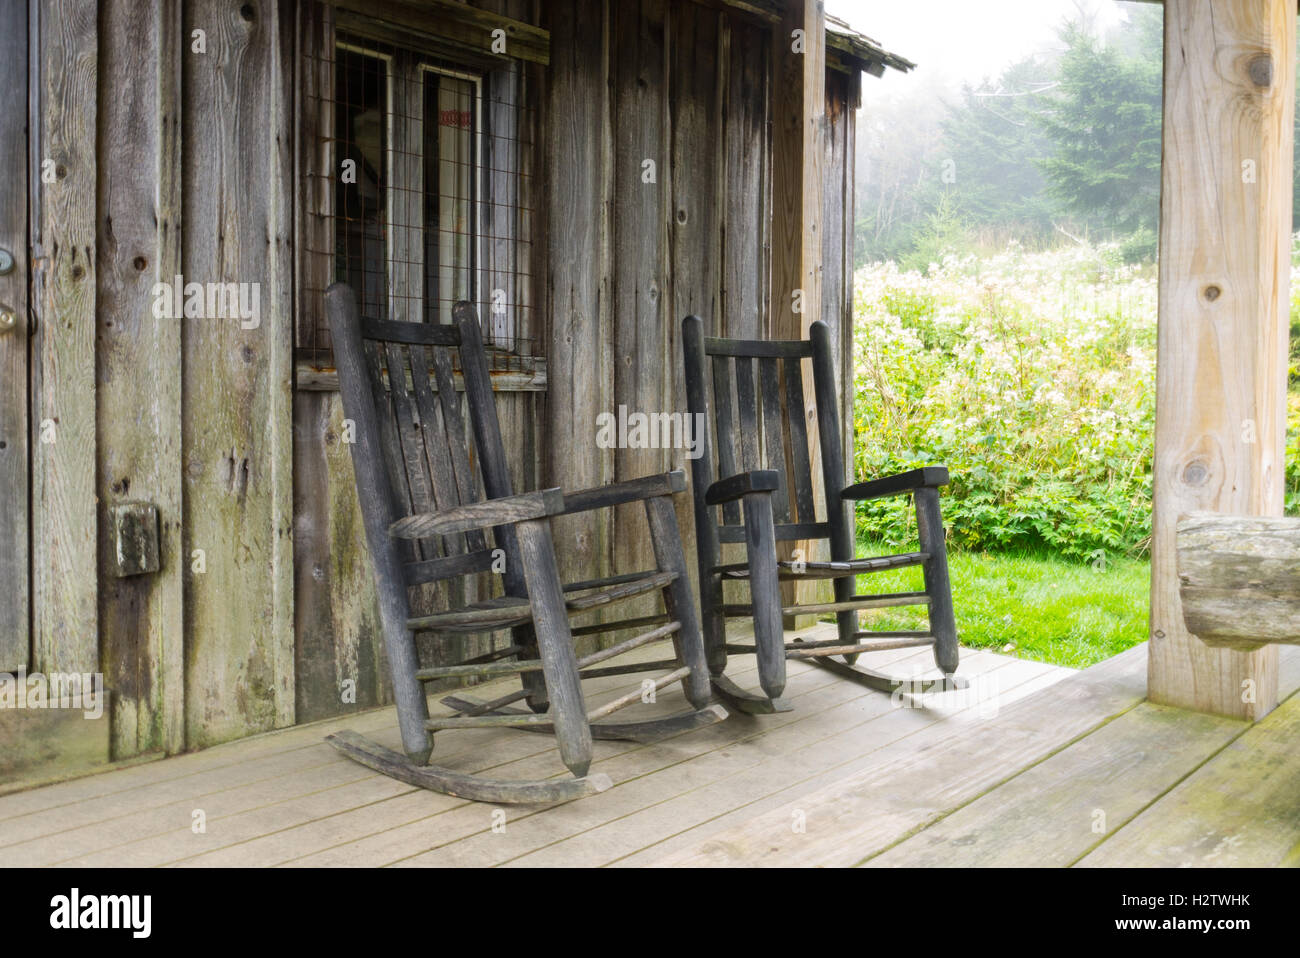 Rocking chairs on the porch of a cabin on Mt. LeConte in the Great Smoky Mountains National Park - Stock Image